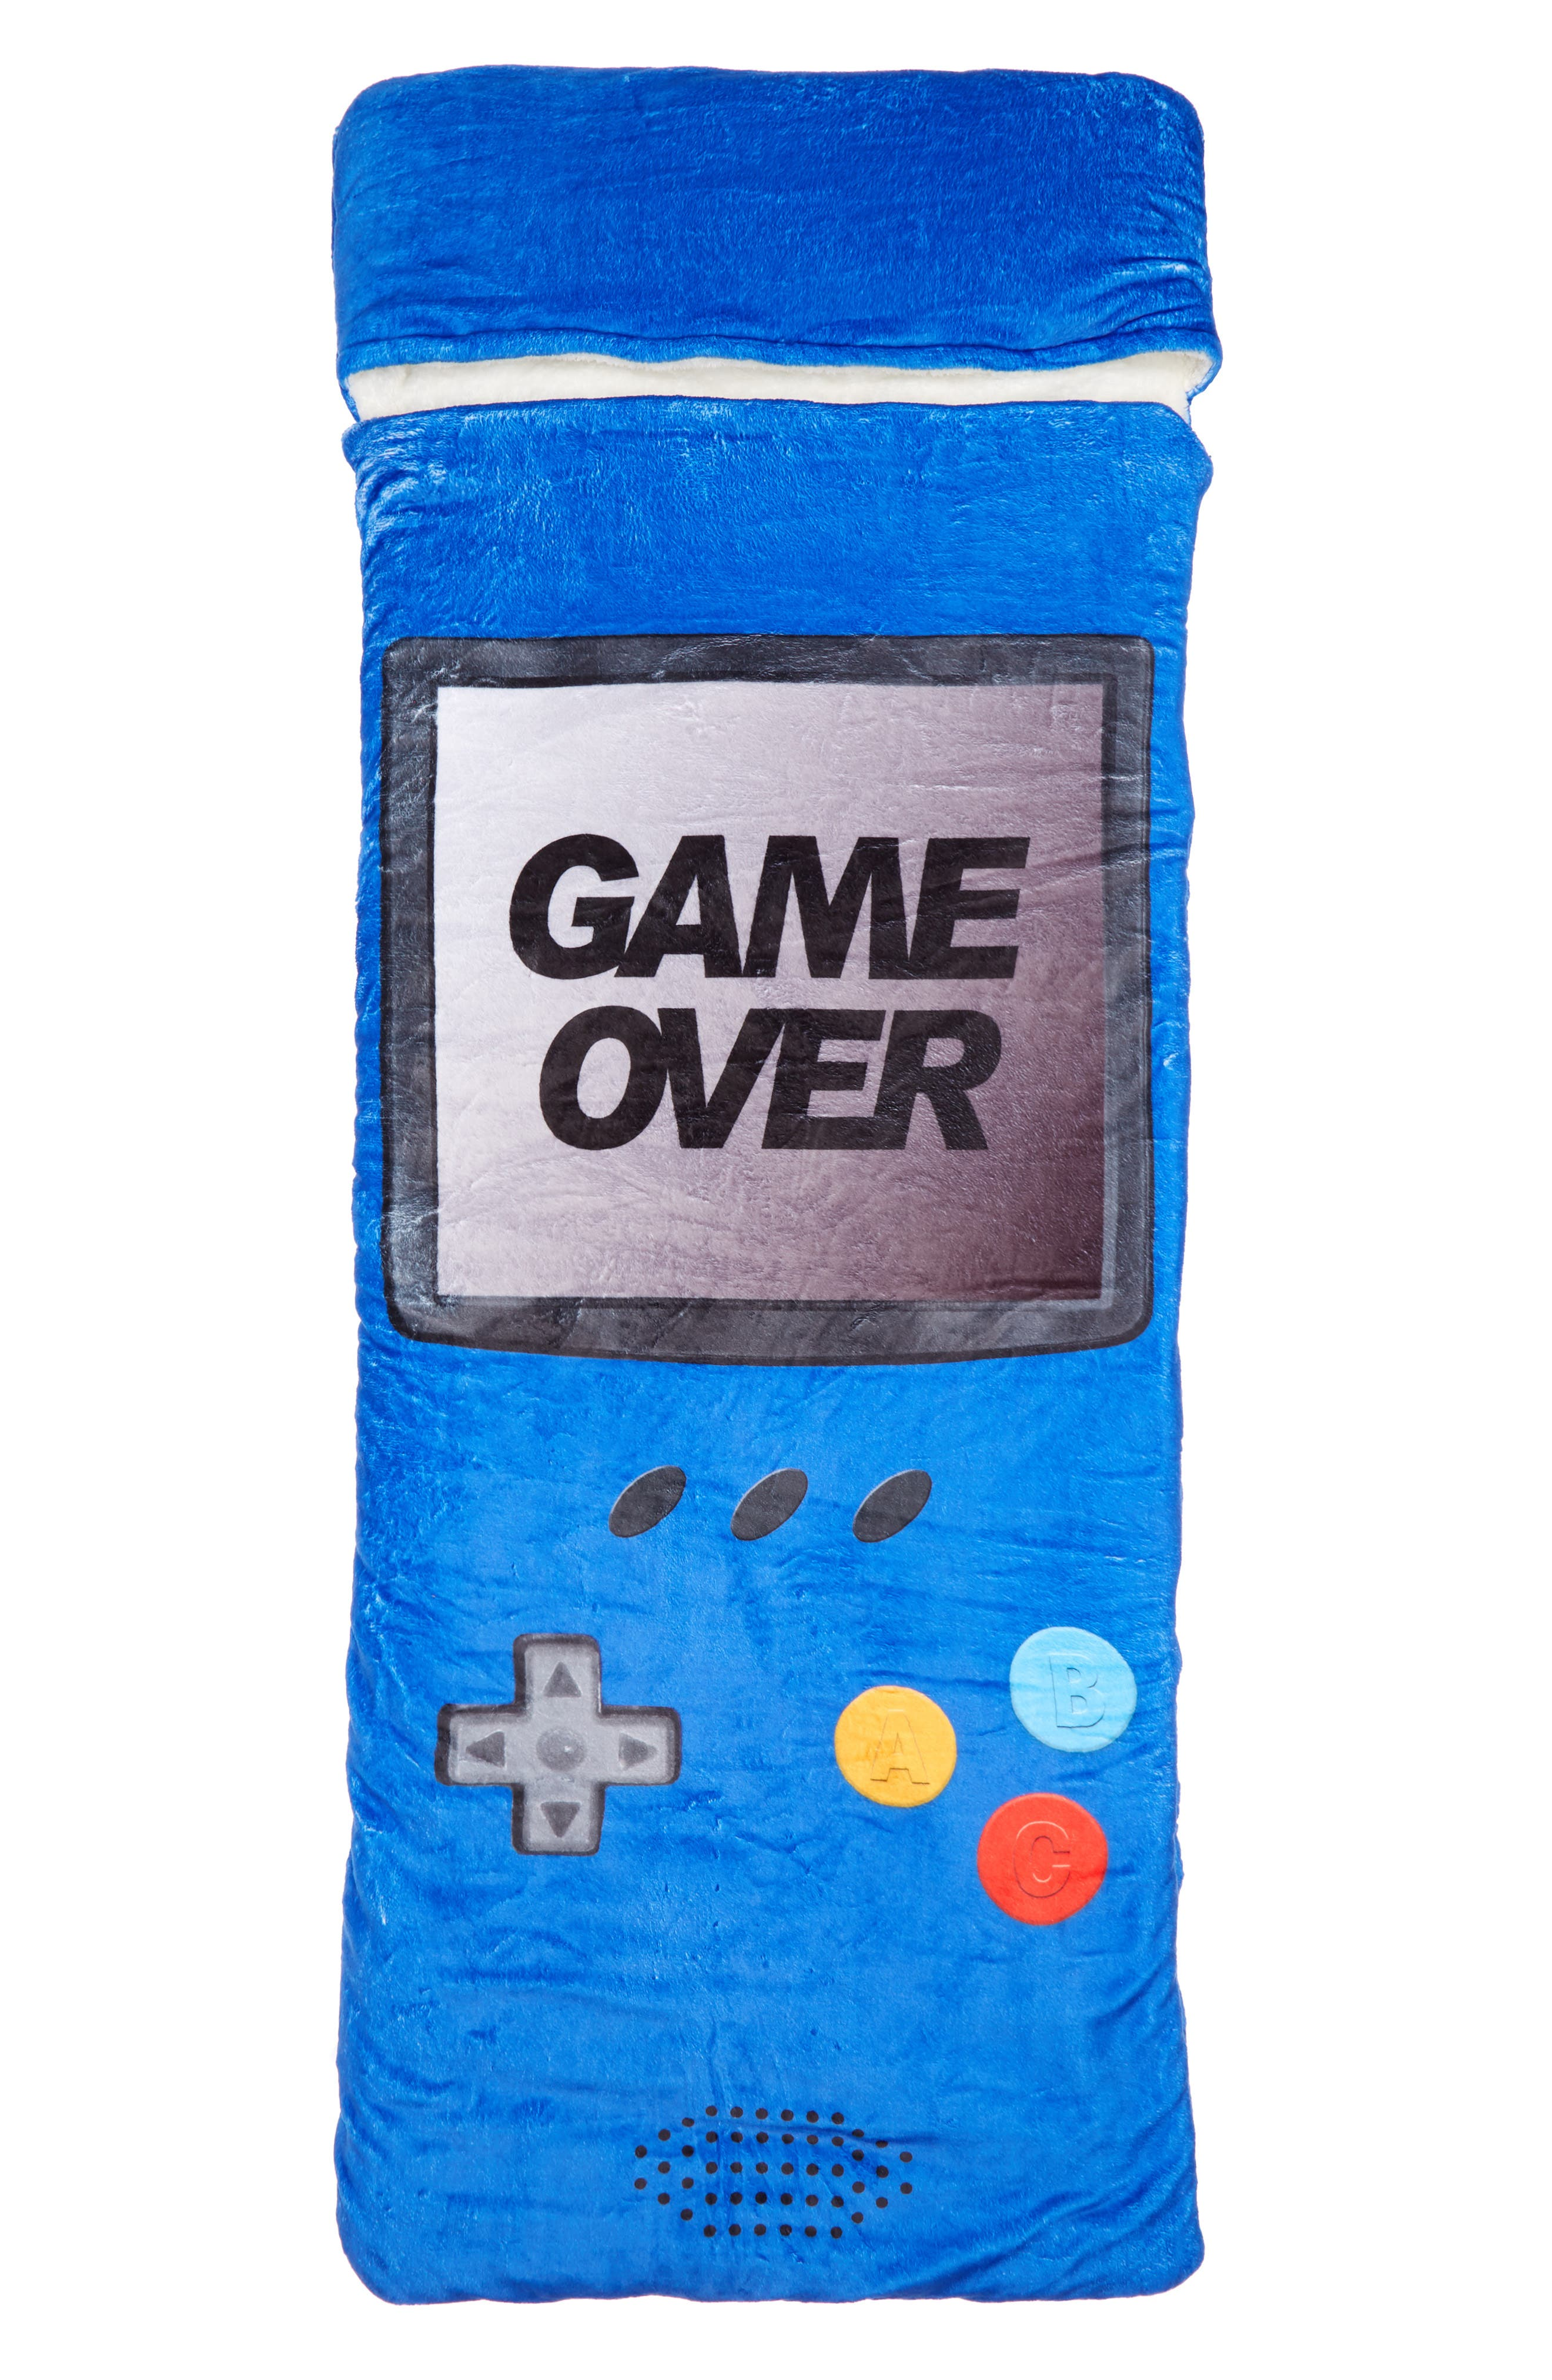 Game Over Sleeping Bag,                             Main thumbnail 1, color,                             Blue